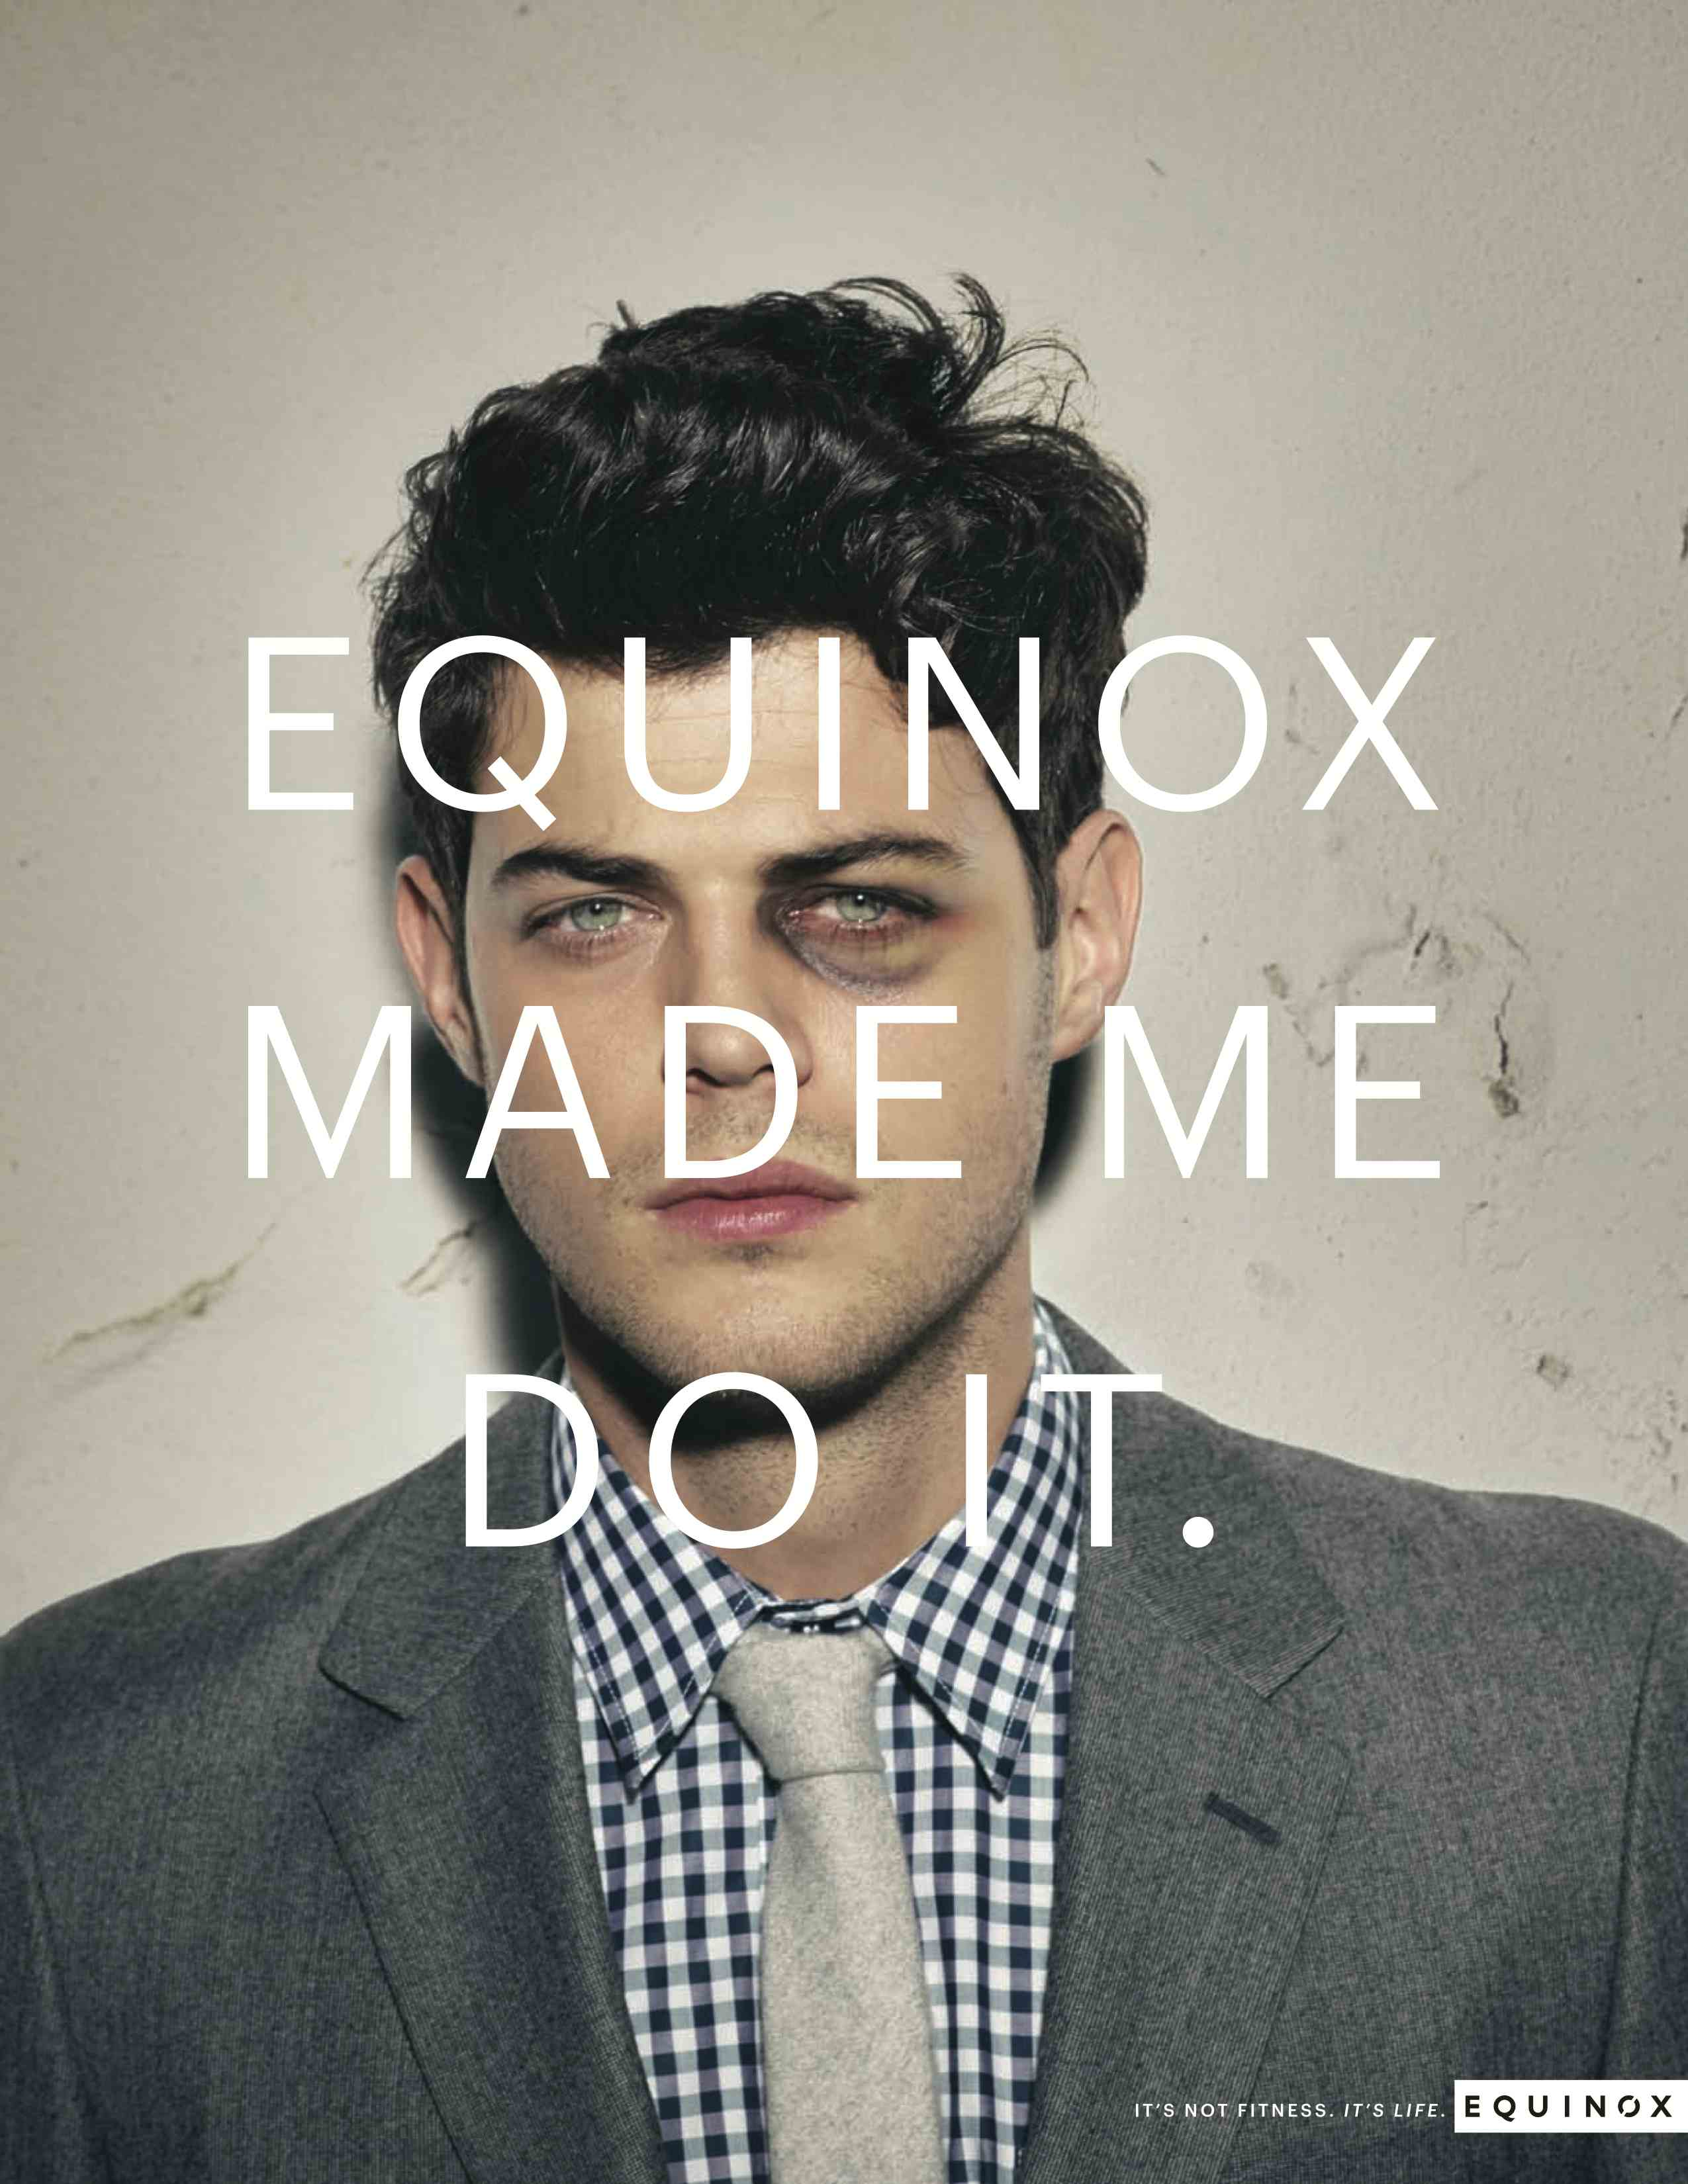 Equinox ad campaign 2014 Equinox Made Me Do It 01